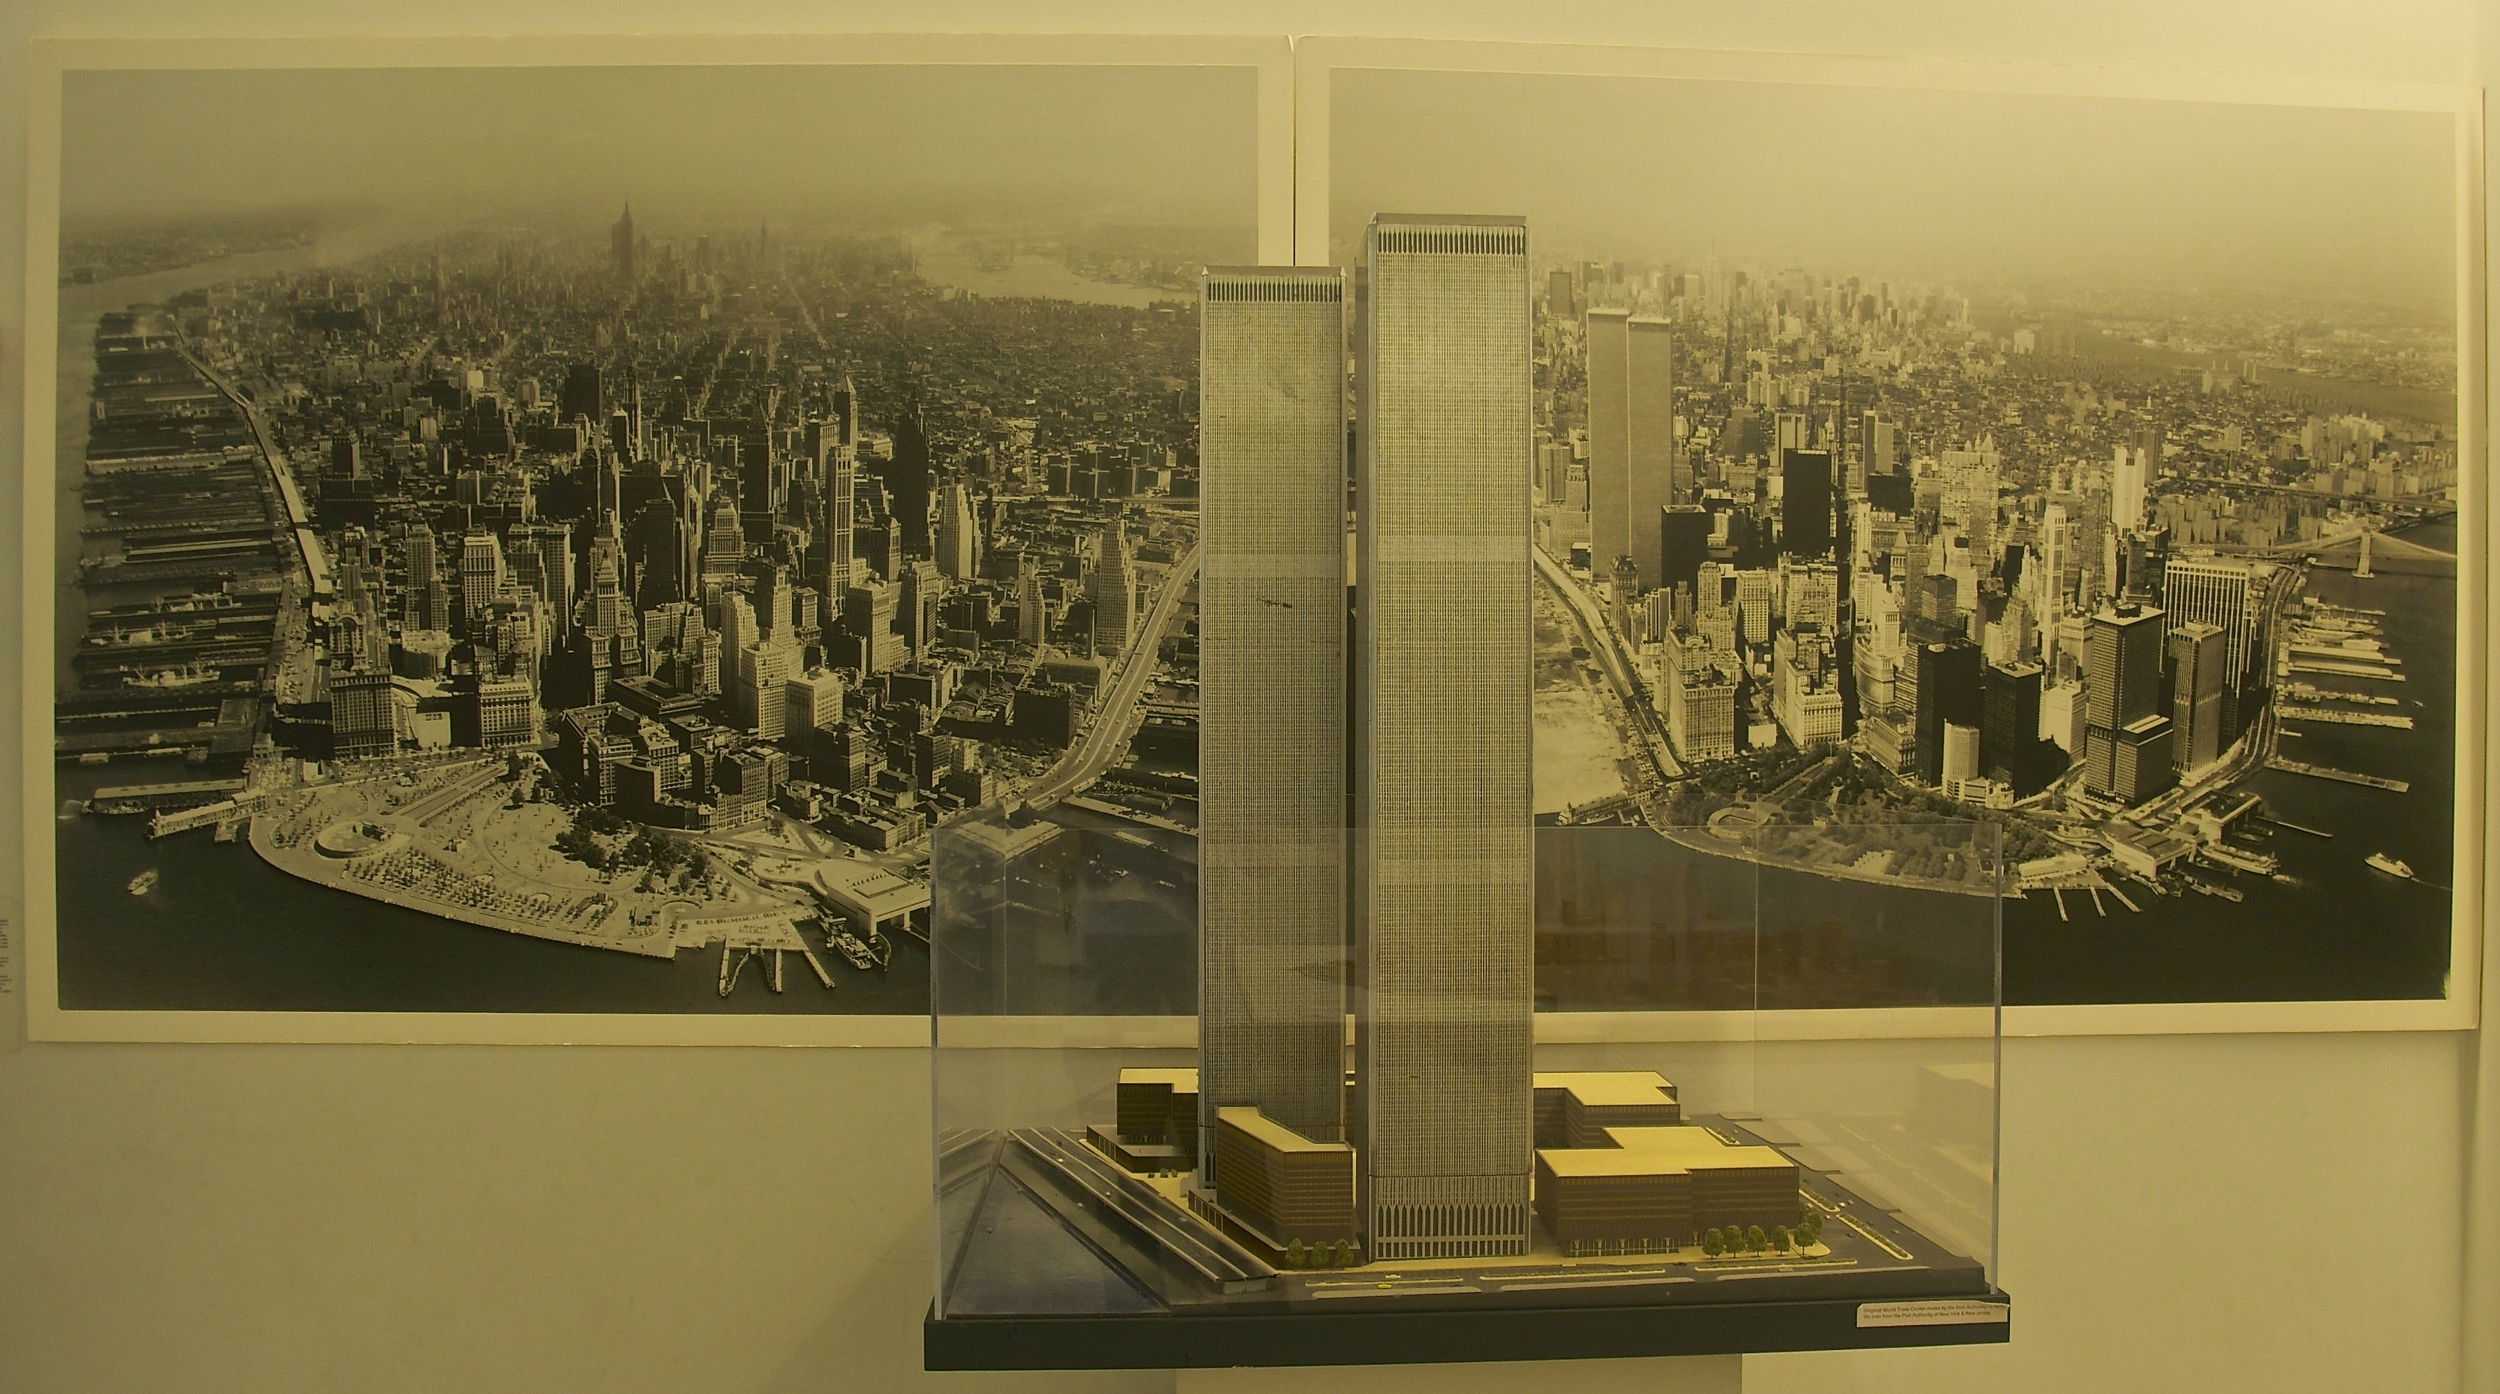 Photos of lower Manhattan serve as a backdrop for models of the Twin Towers at the Skyscraper Museum in New York. The photo on the left shows the area before the towers were built; the second after construction was completed. (Photo: Joseph Kellard/Courtesy Skyscraper Museum).